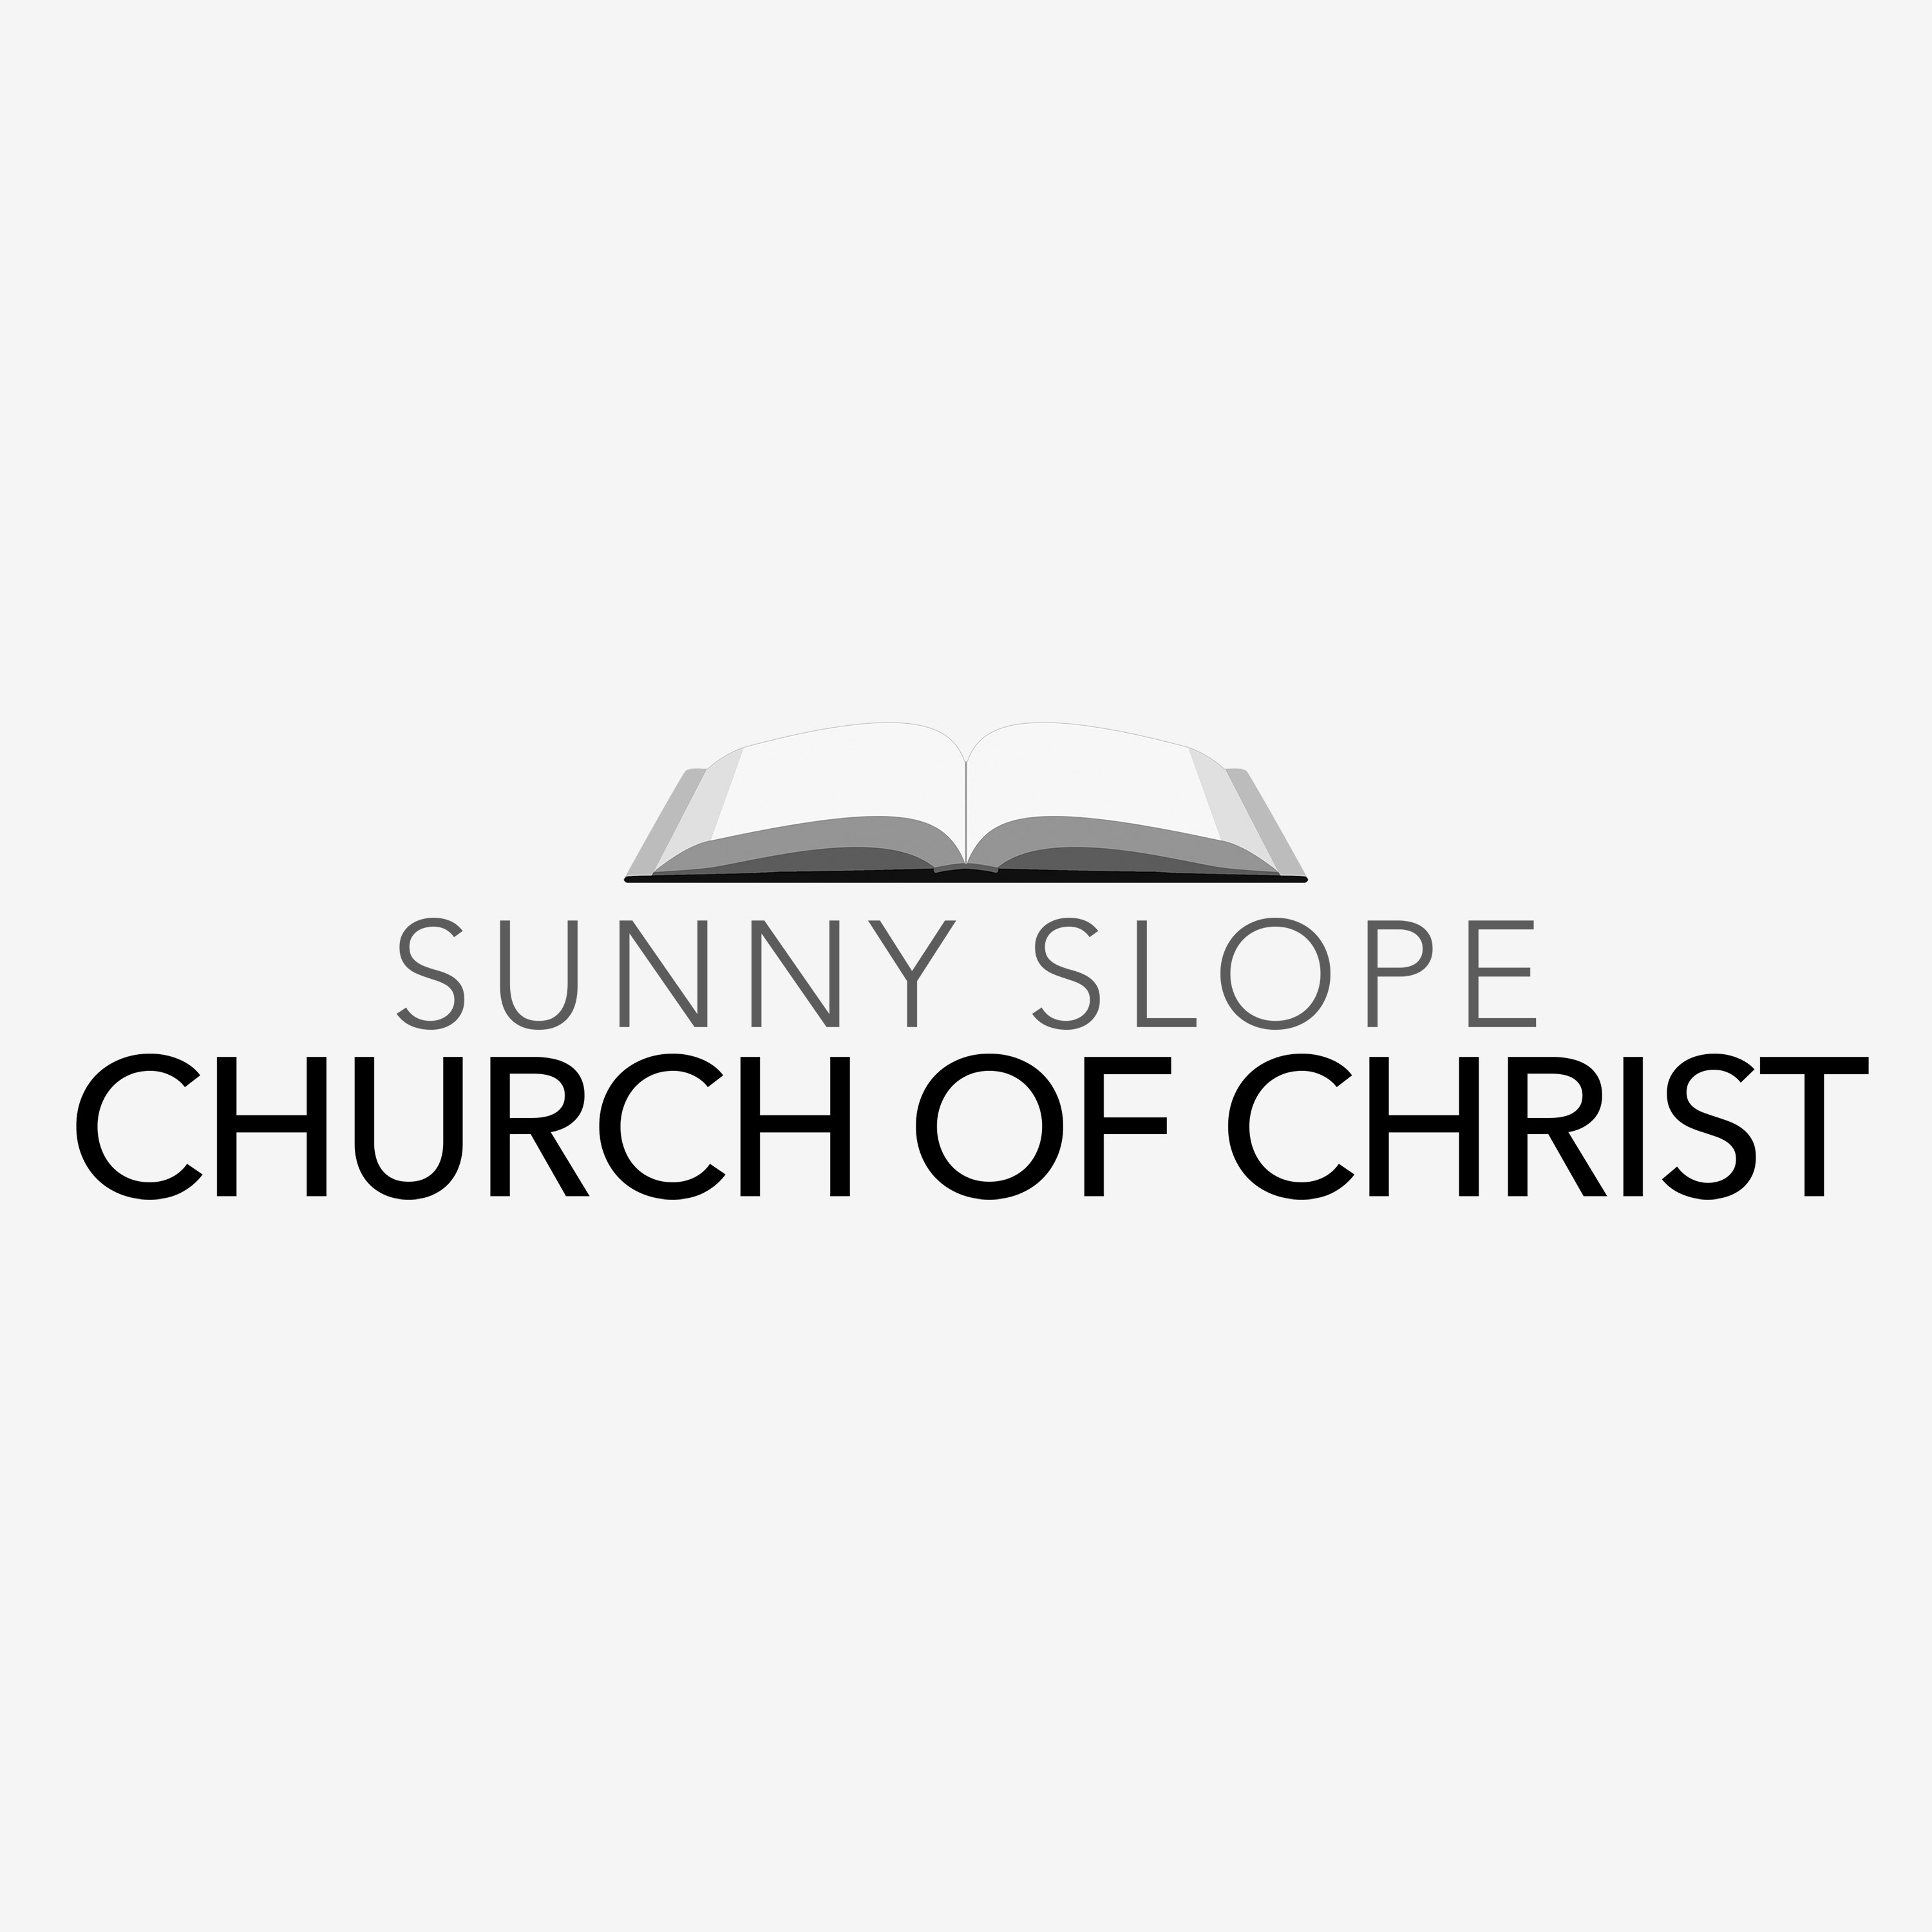 Sunny Slope Church of Christ